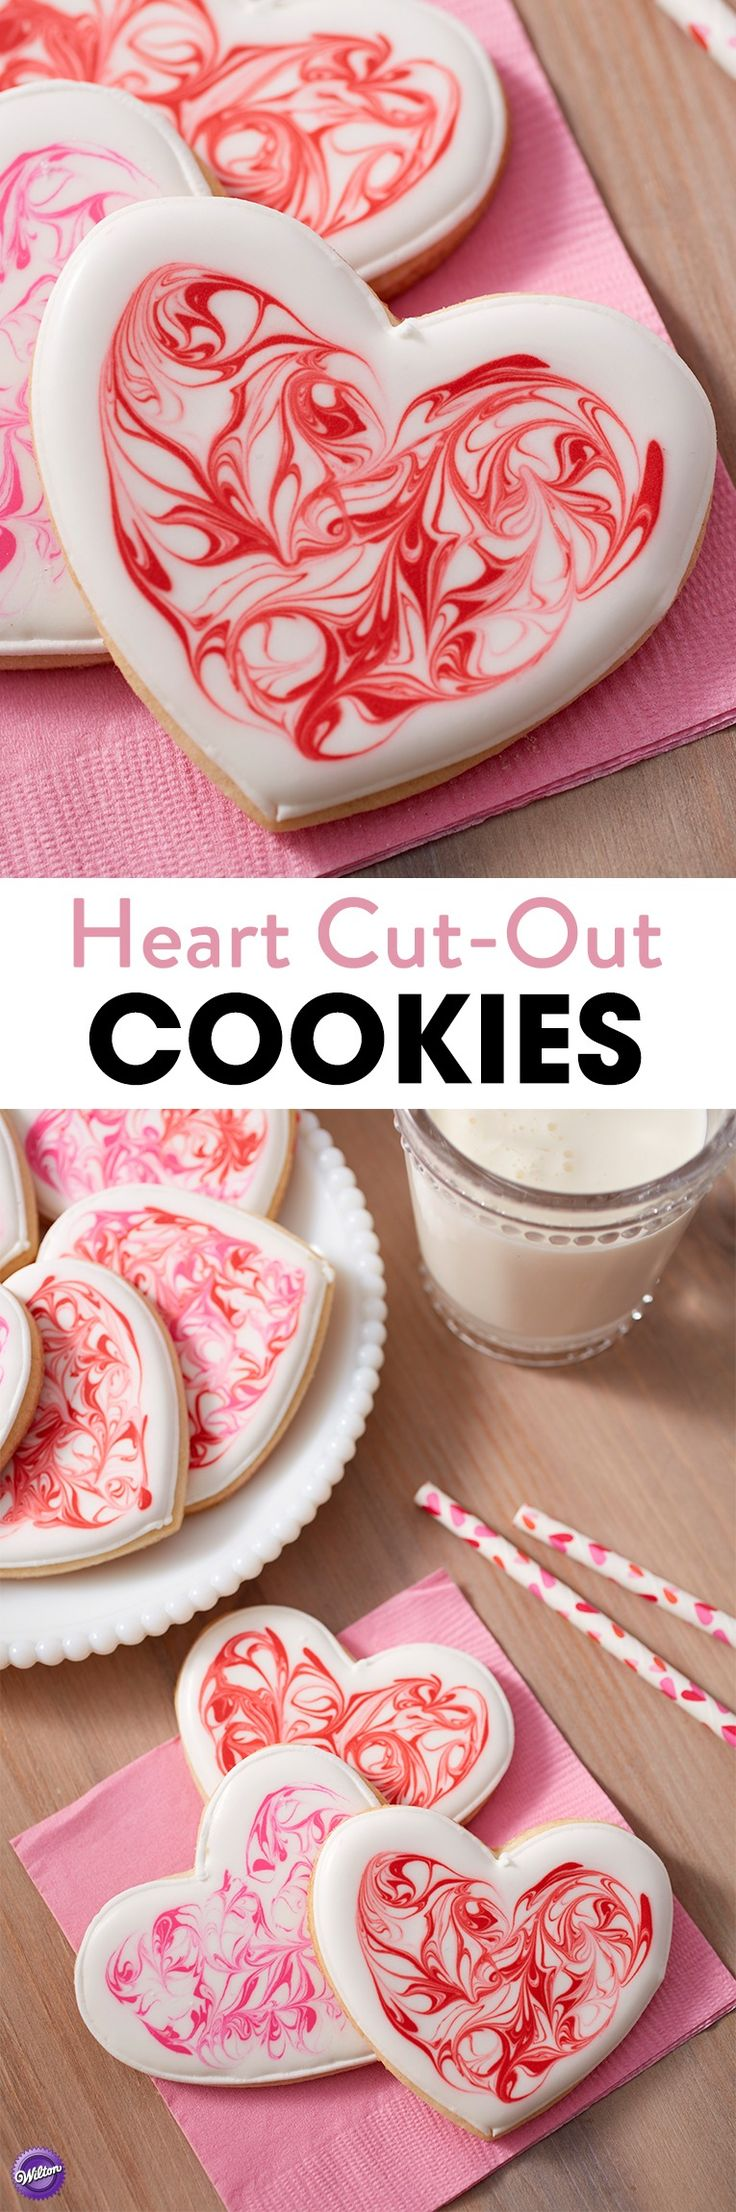 Perfect for special holiday celebrations, especially for Valentine's Day, these Heart Cut Out Cookies are covered in marbleized white, red and rose royal icing. Place one on each place setting to show your love.